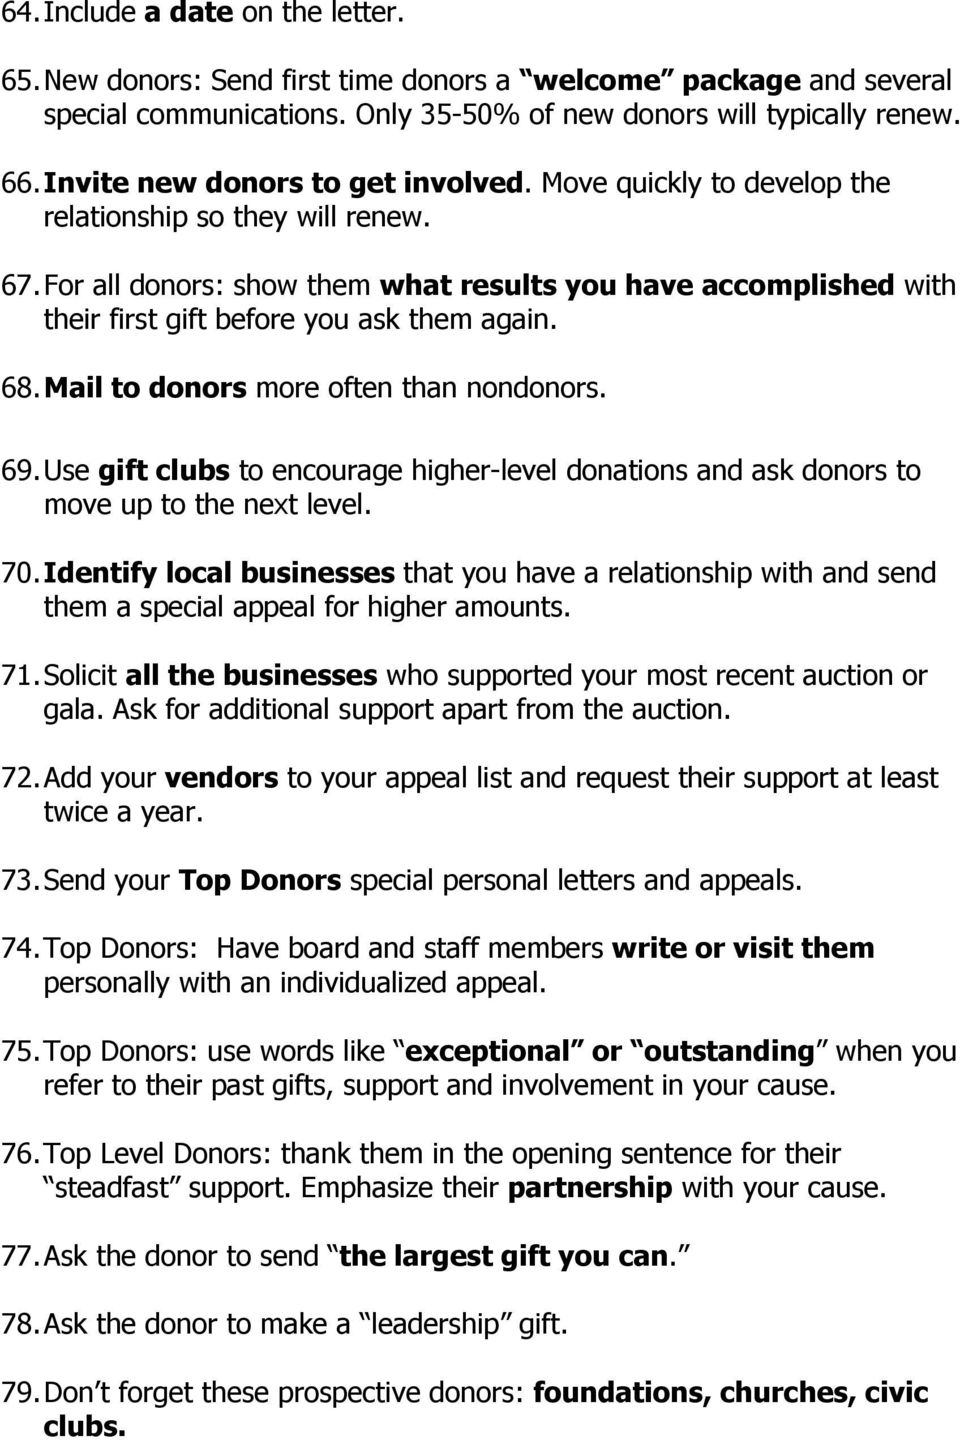 For all donors: show them what results you have accomplished with their first gift before you ask them again. 68. Mail to donors more often than nondonors. 69.